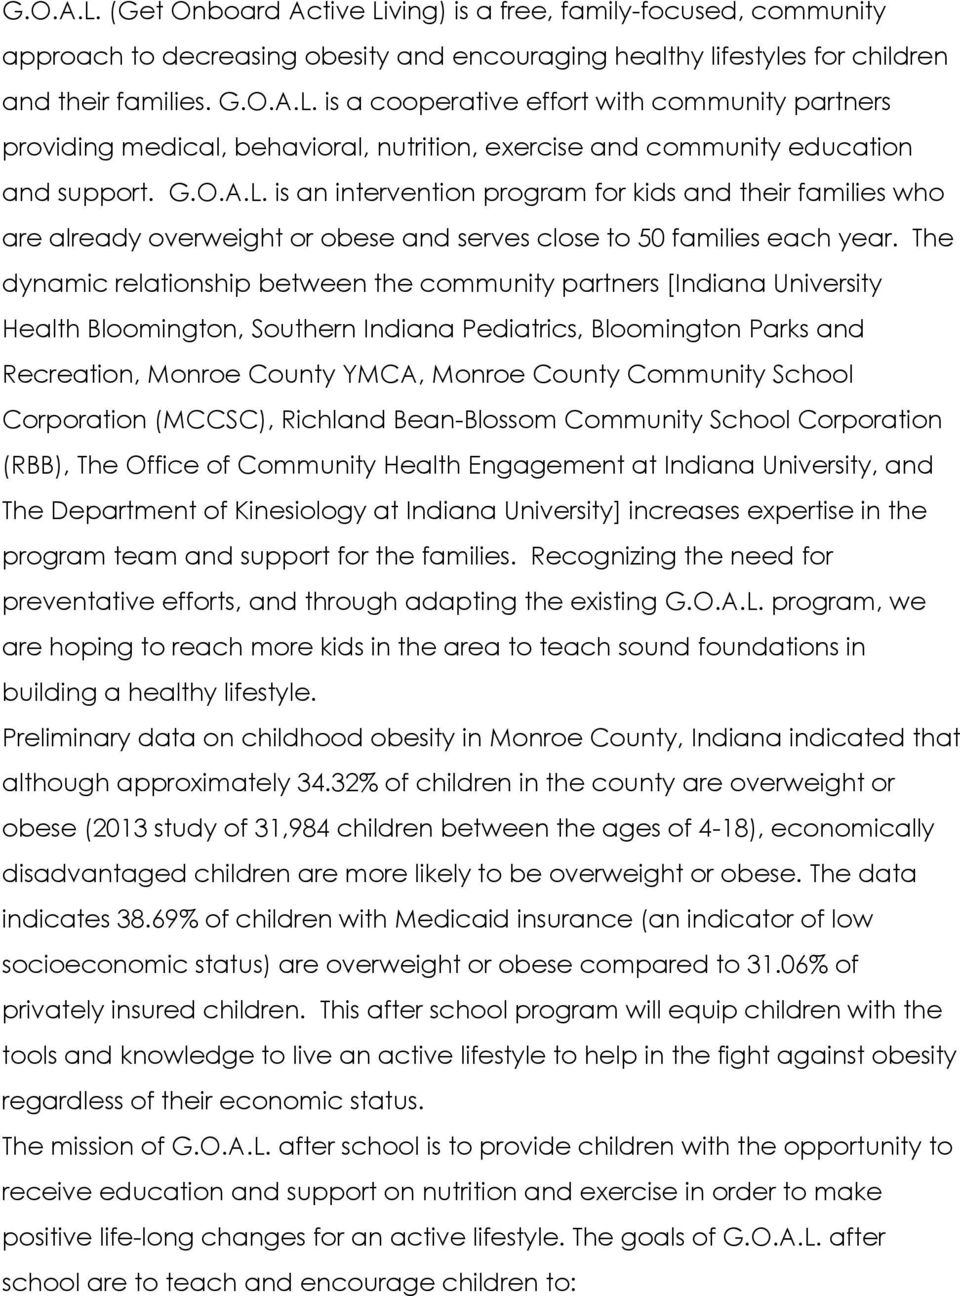 The dynamic relationship between the community partners [Indiana University Health Bloomington, Southern Indiana Pediatrics, Bloomington Parks and Recreation, Monroe County YMCA, Monroe County